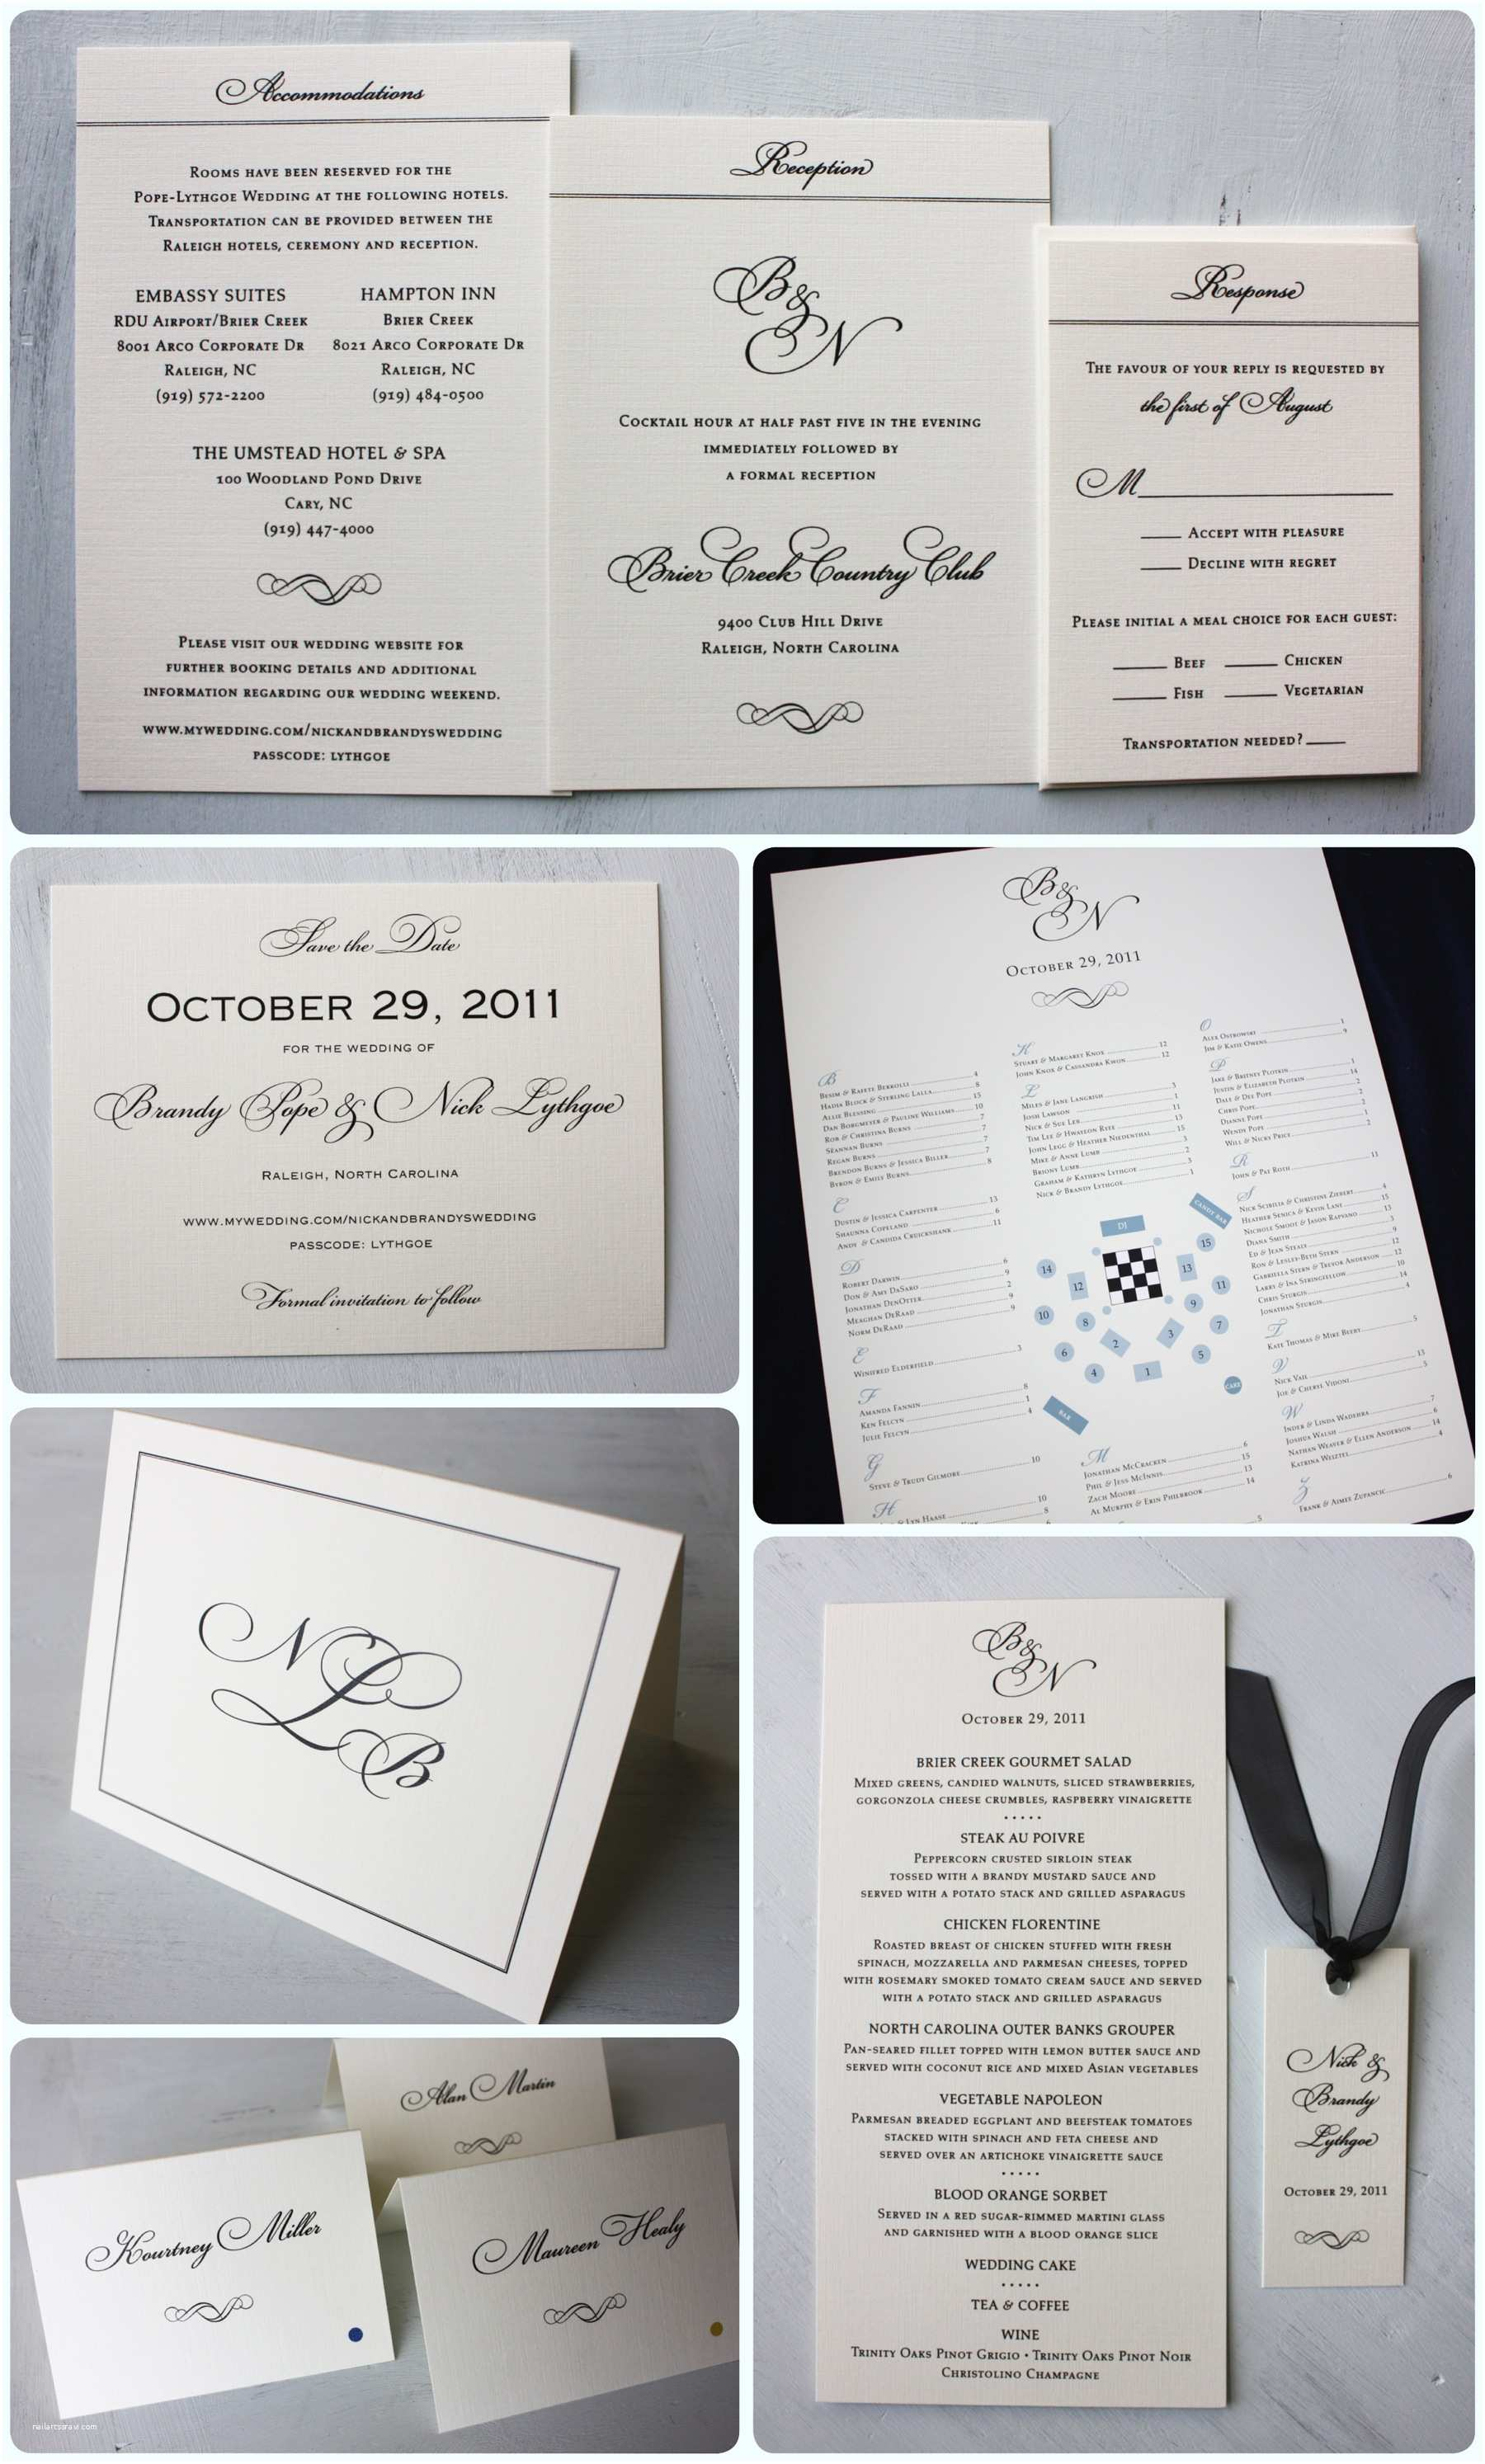 Clutch Wedding Invitations formal Black & Cream Monogram with Silver Clutch Wedding